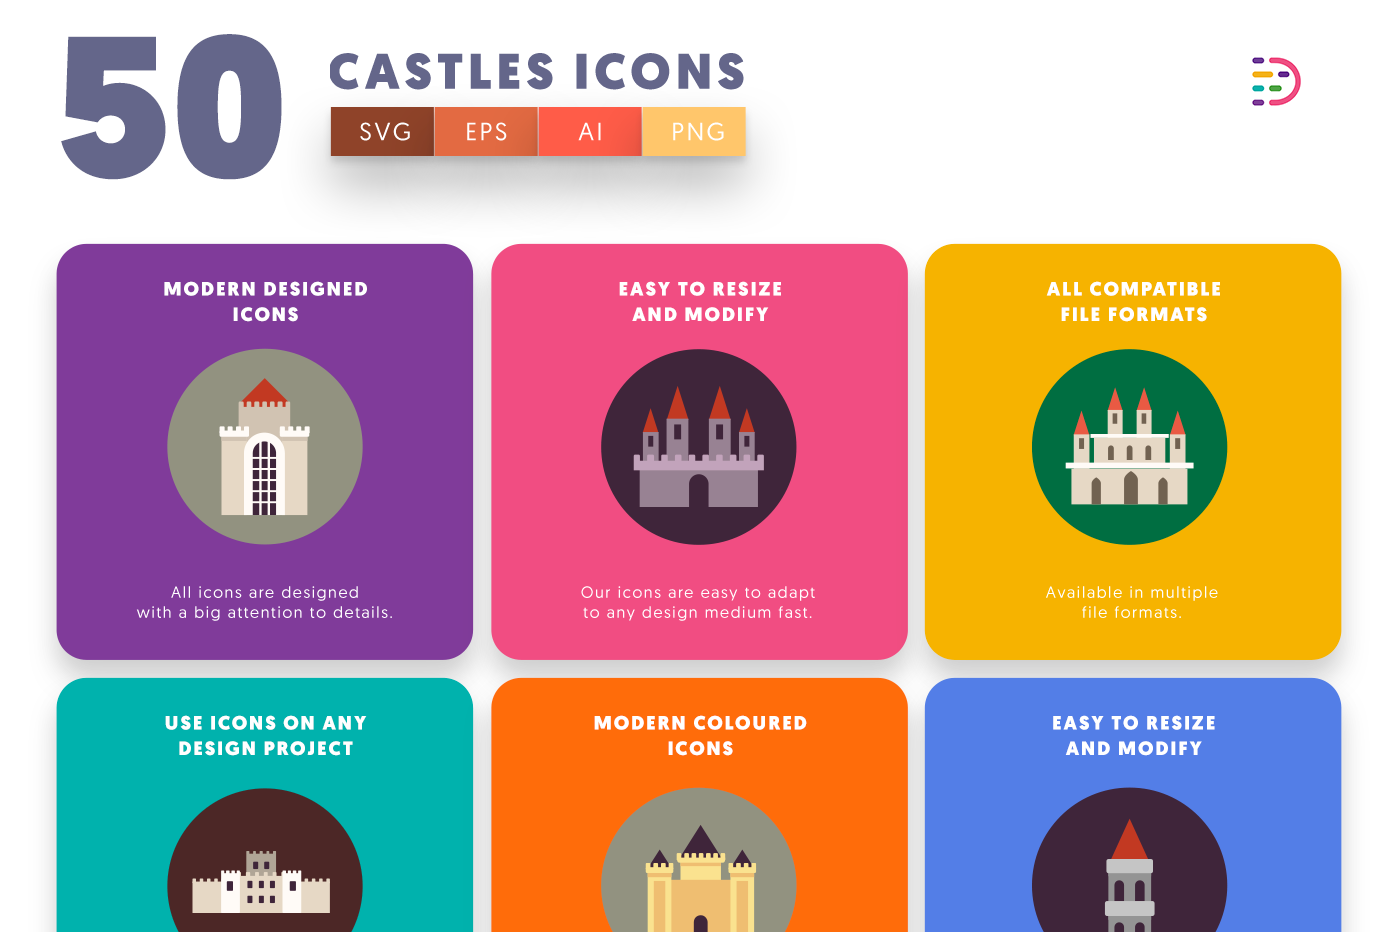 Full vector 50 Castle Icons